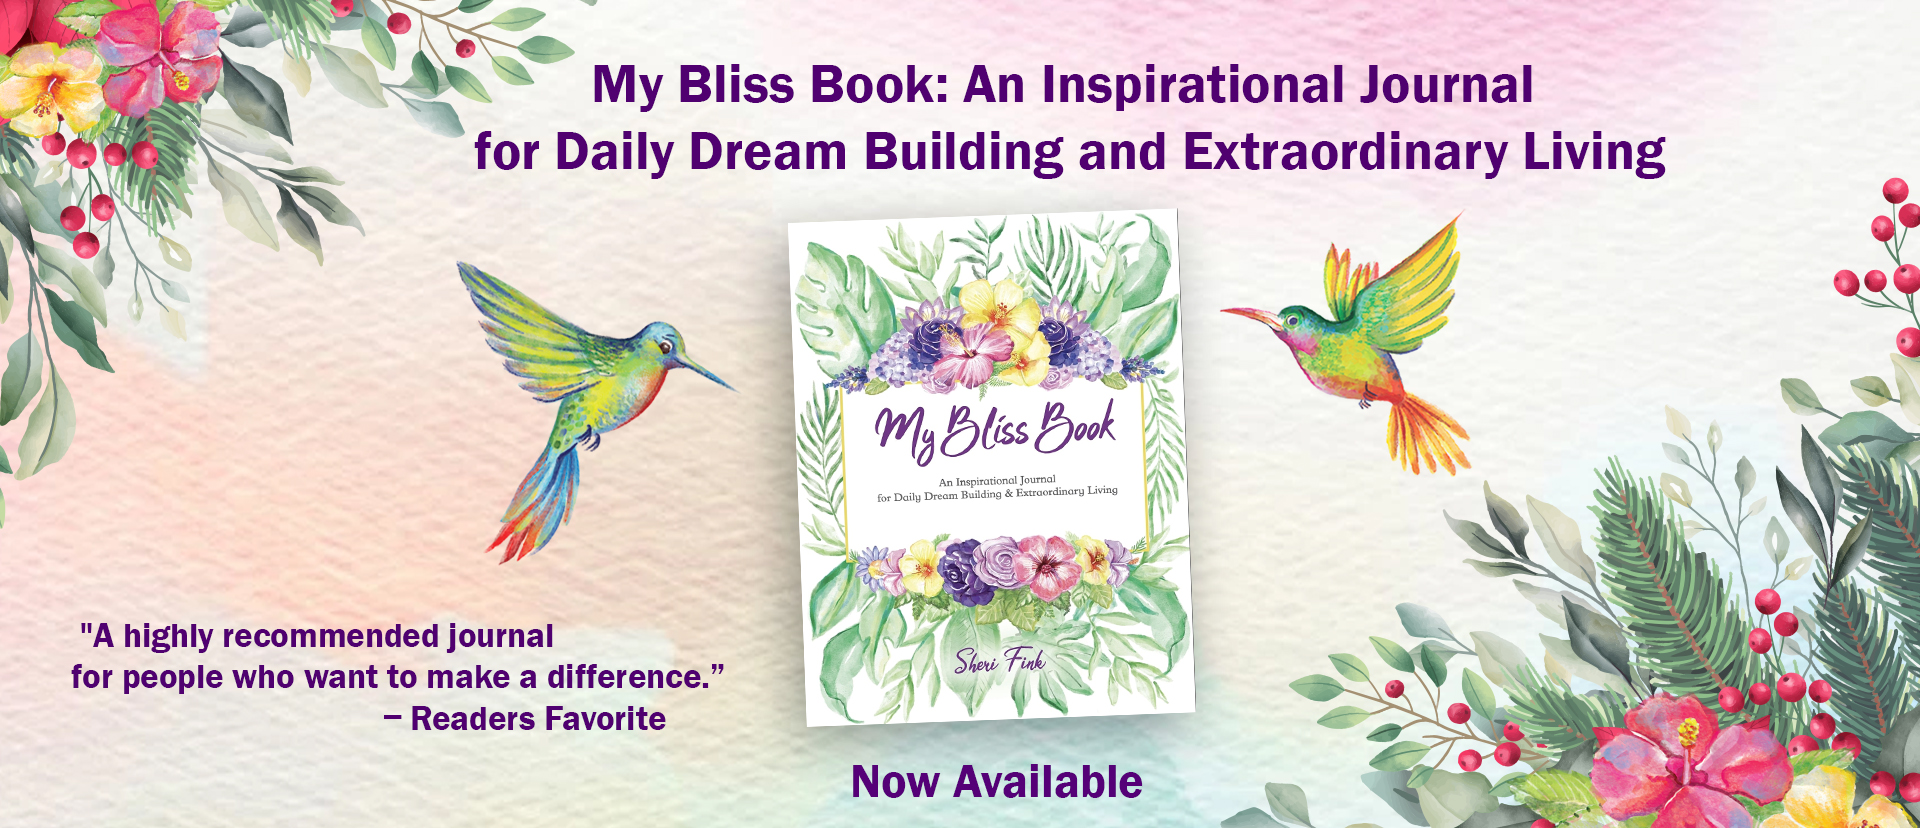 My Bliss Book: An Inspirational Journal for Daily Dream Building and Extraordinary Living by Sheri Fink